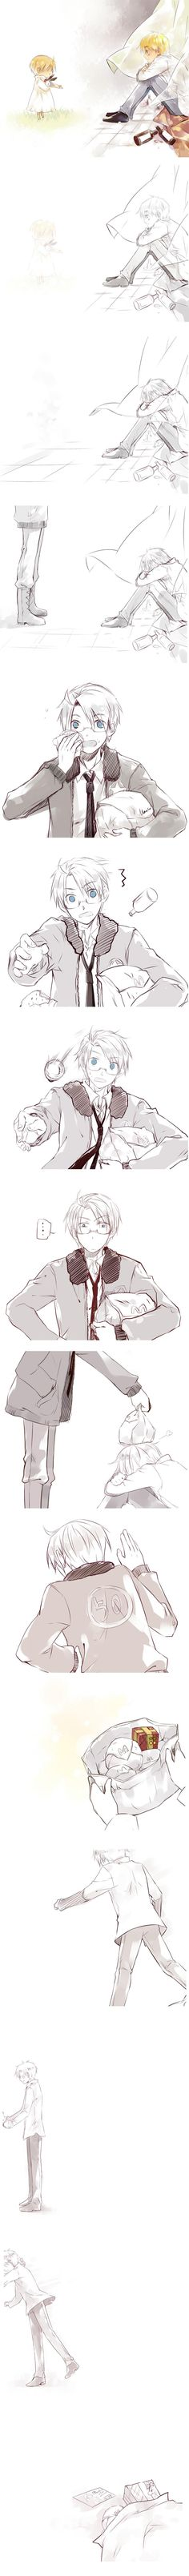 Arthur's feeling down and reminiscing about the past (again) when Alfred shows up.... - Art by Saiyki